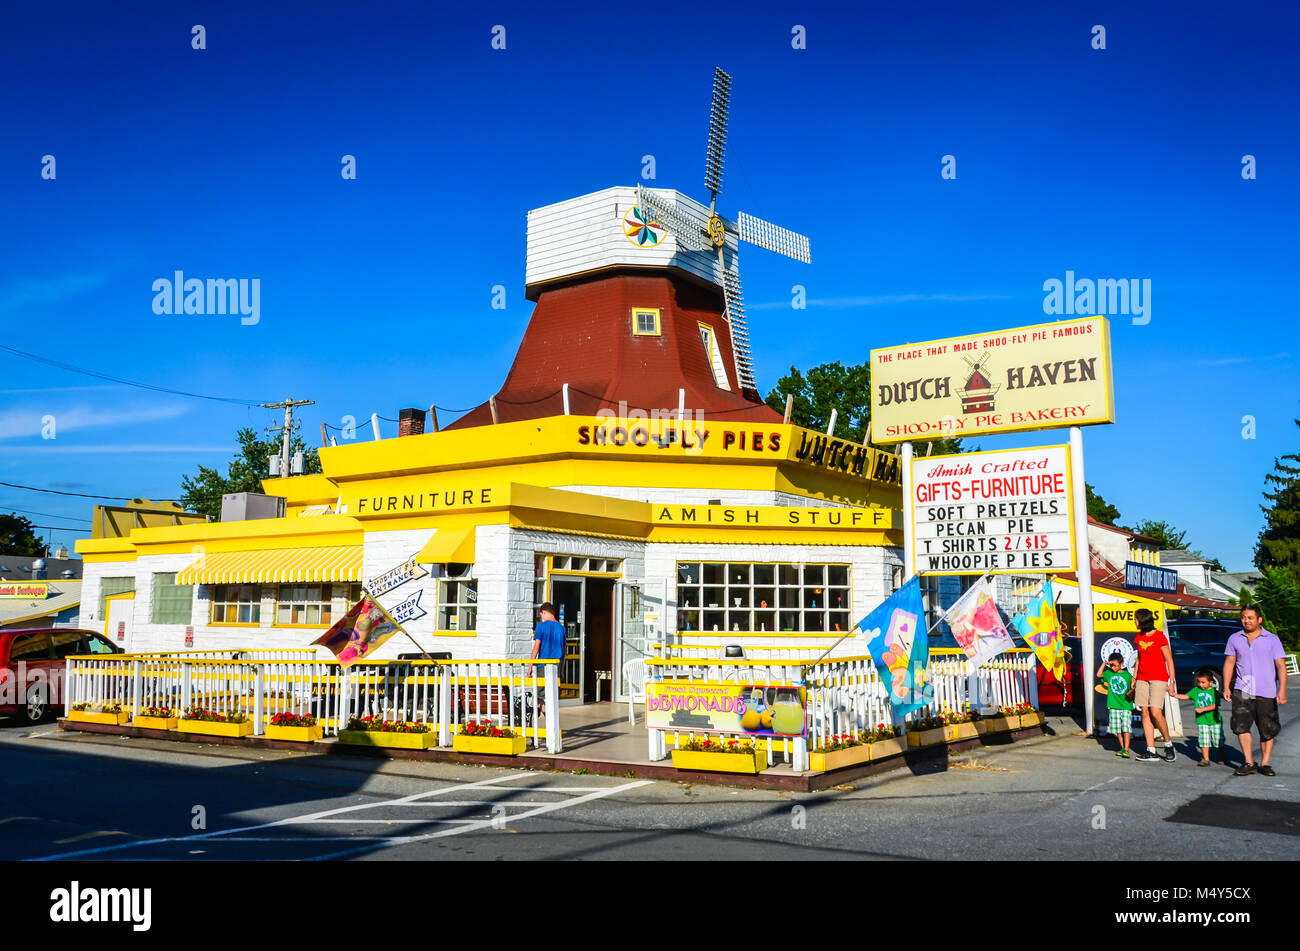 Dutch Haven, long-standing bakeshop offering old-fashioned shoofly pie, Amish souvenirs and local goods near Lancaster, - Stock Image